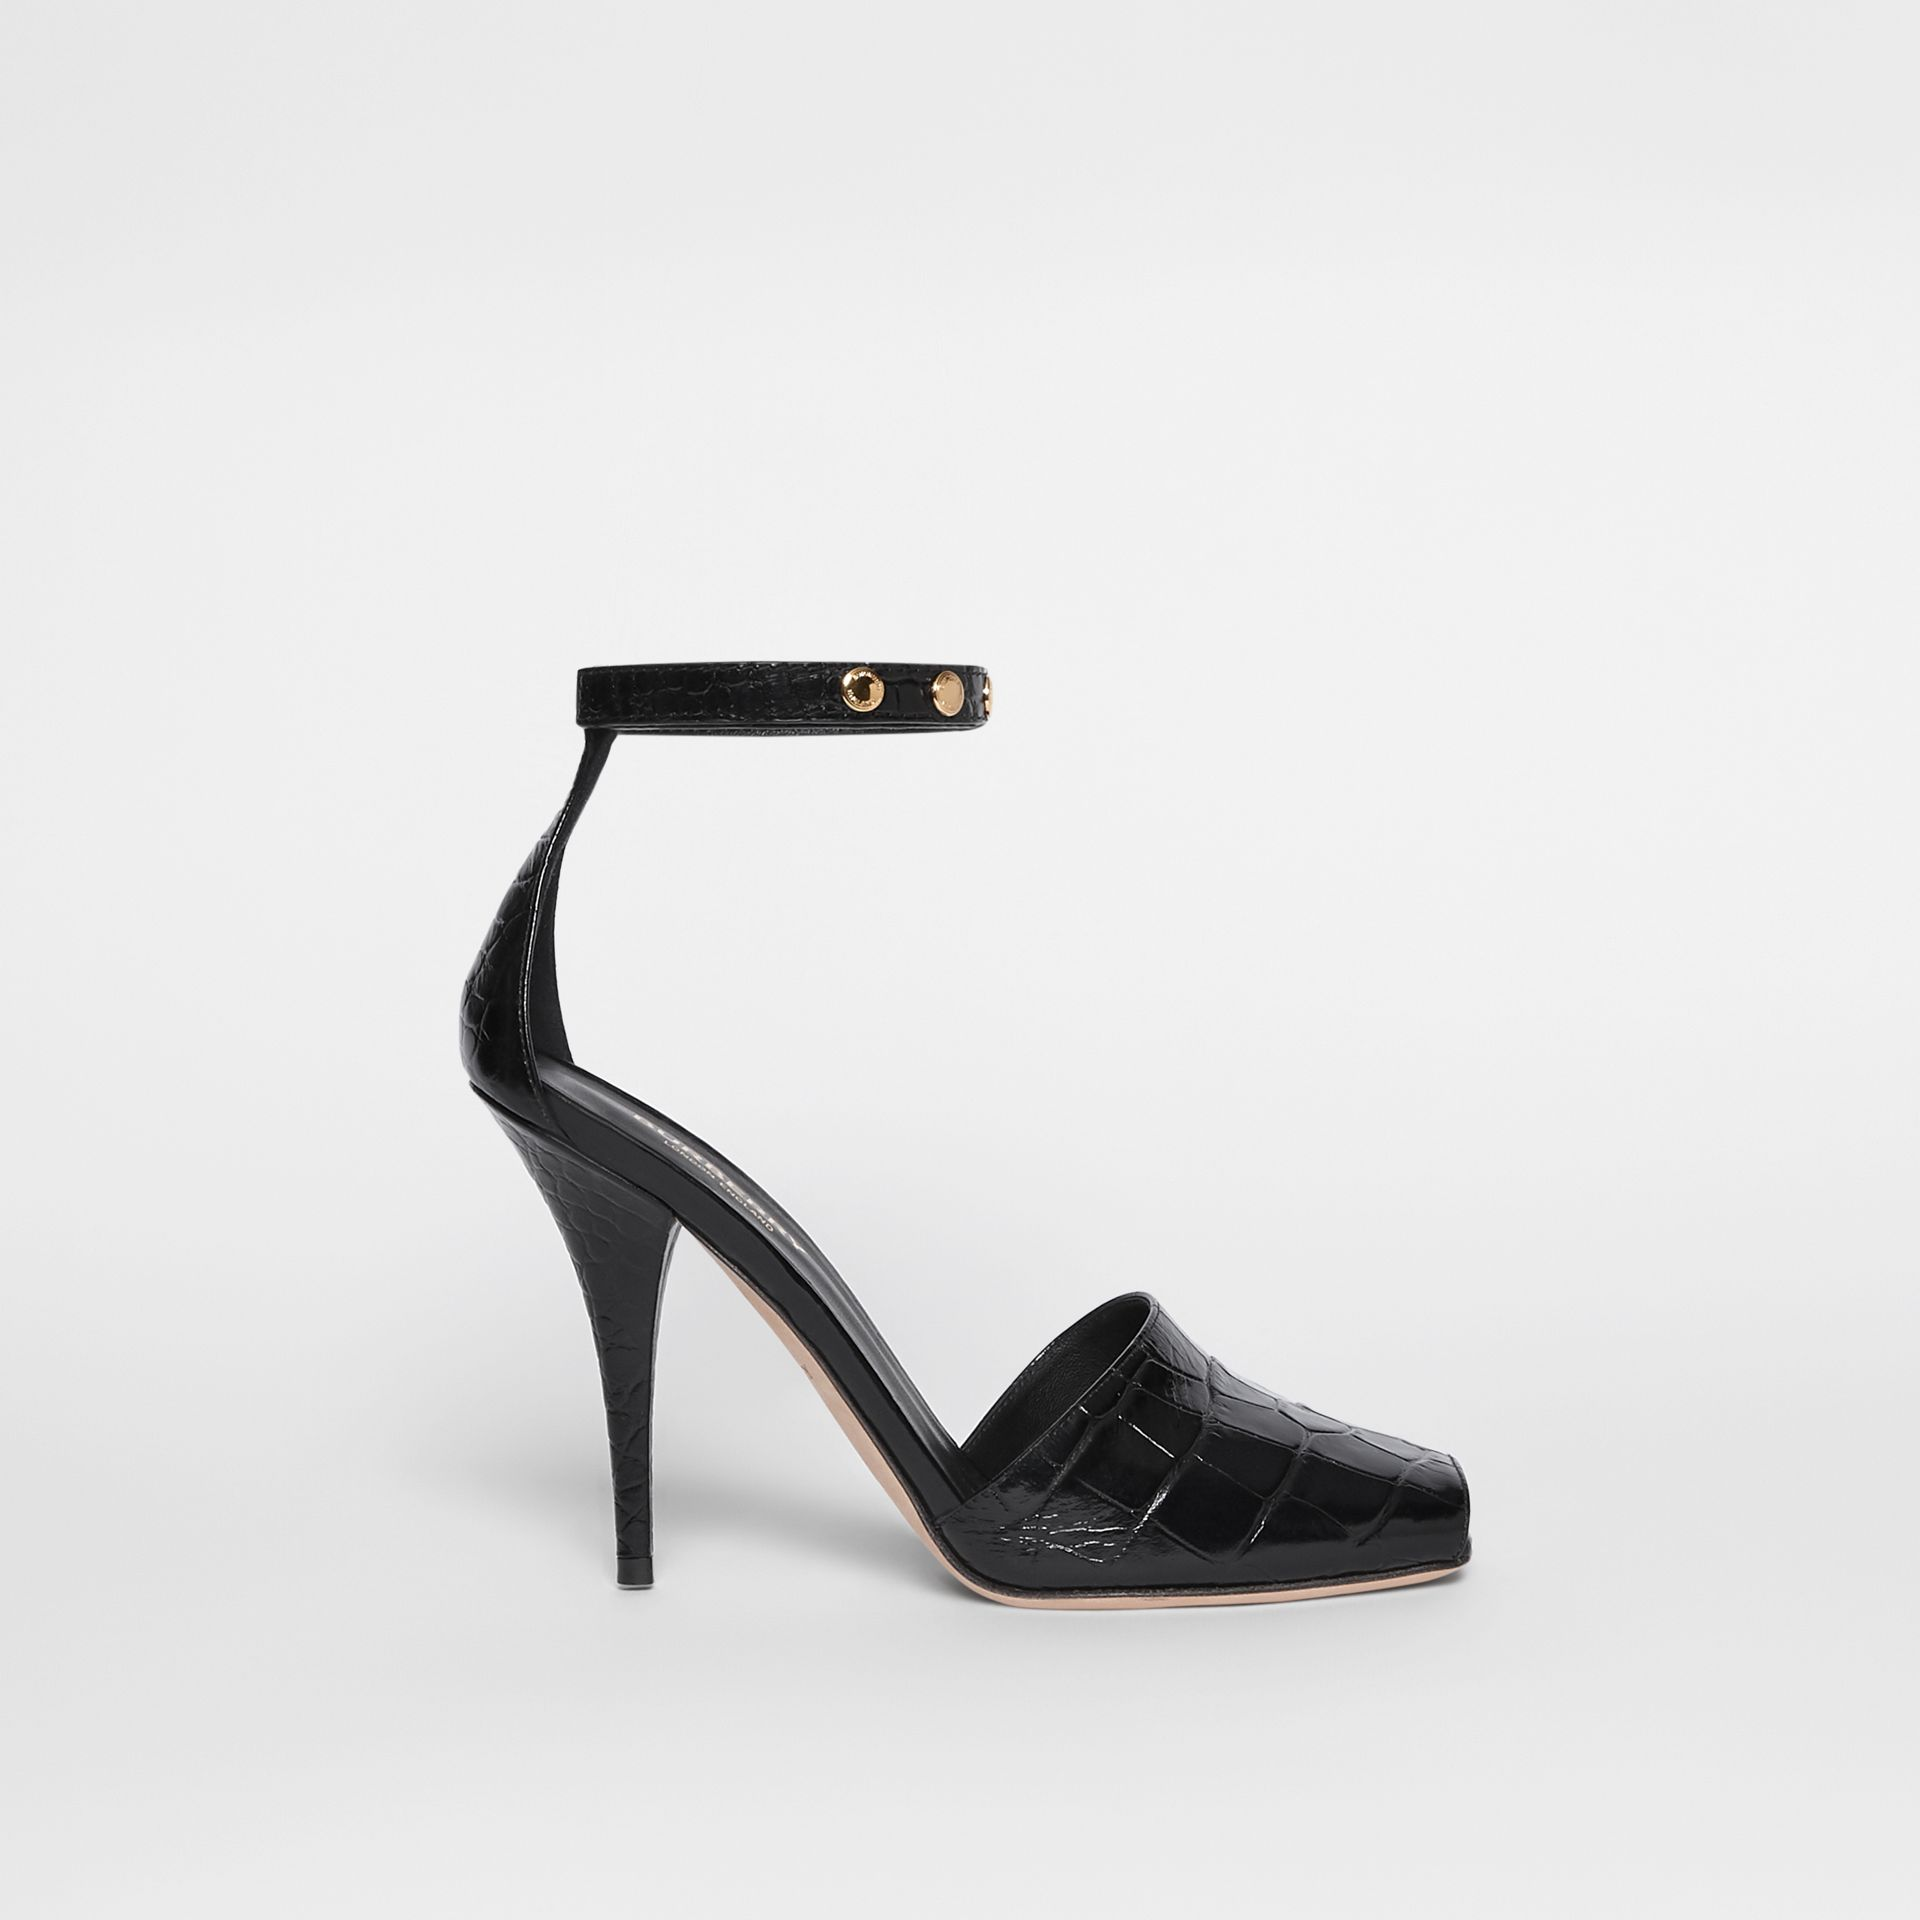 Triple Stud Embossed Leather Peep-toe Sandals in Black - Women | Burberry - gallery image 5